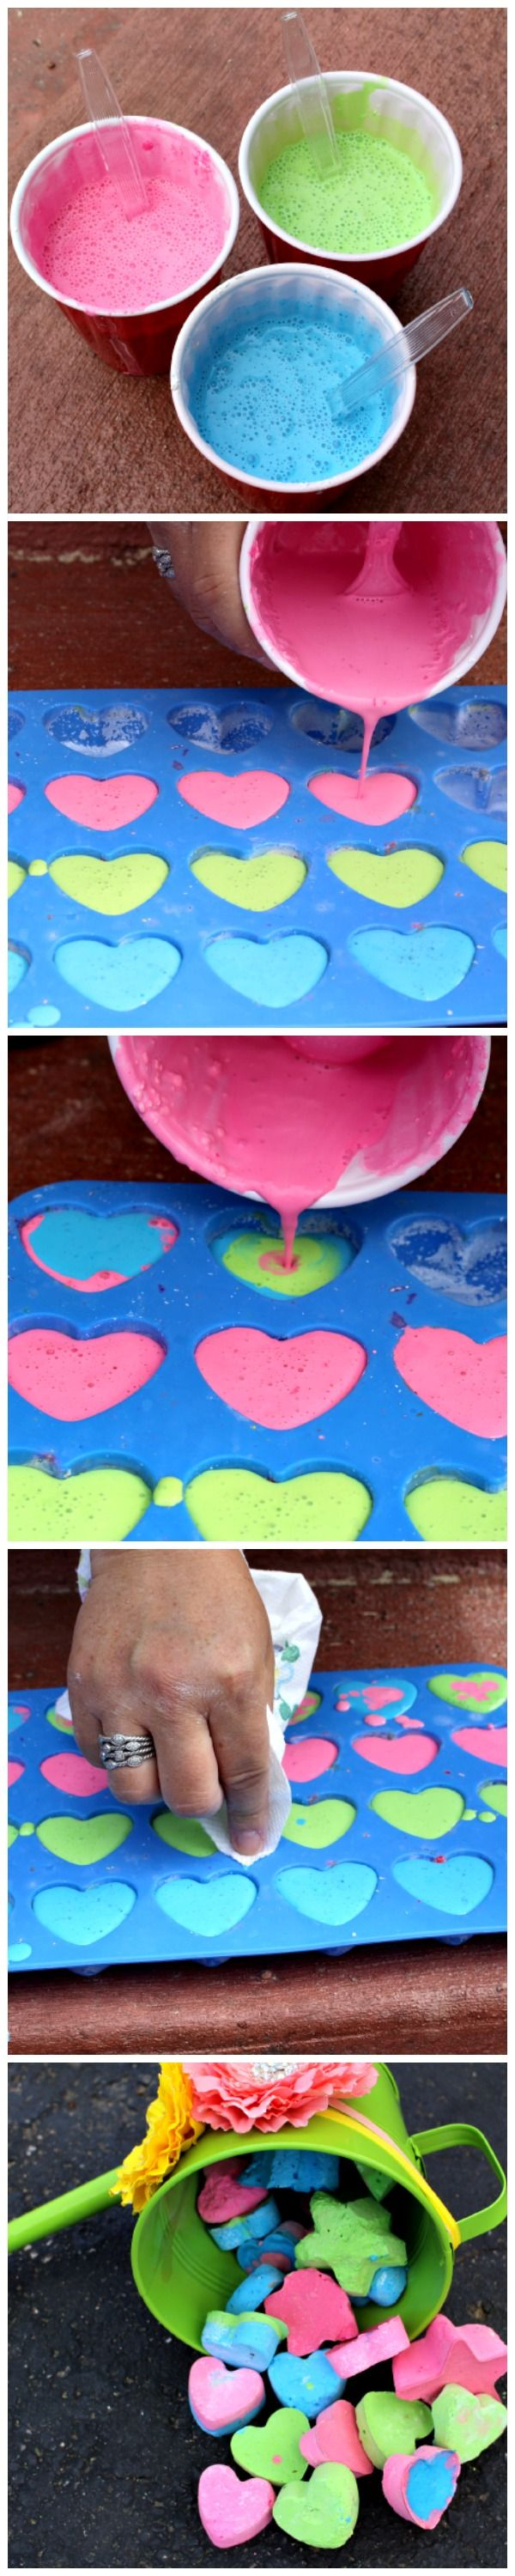 DIY Sidewalk Chalk - So easy and only 3 ingredients!